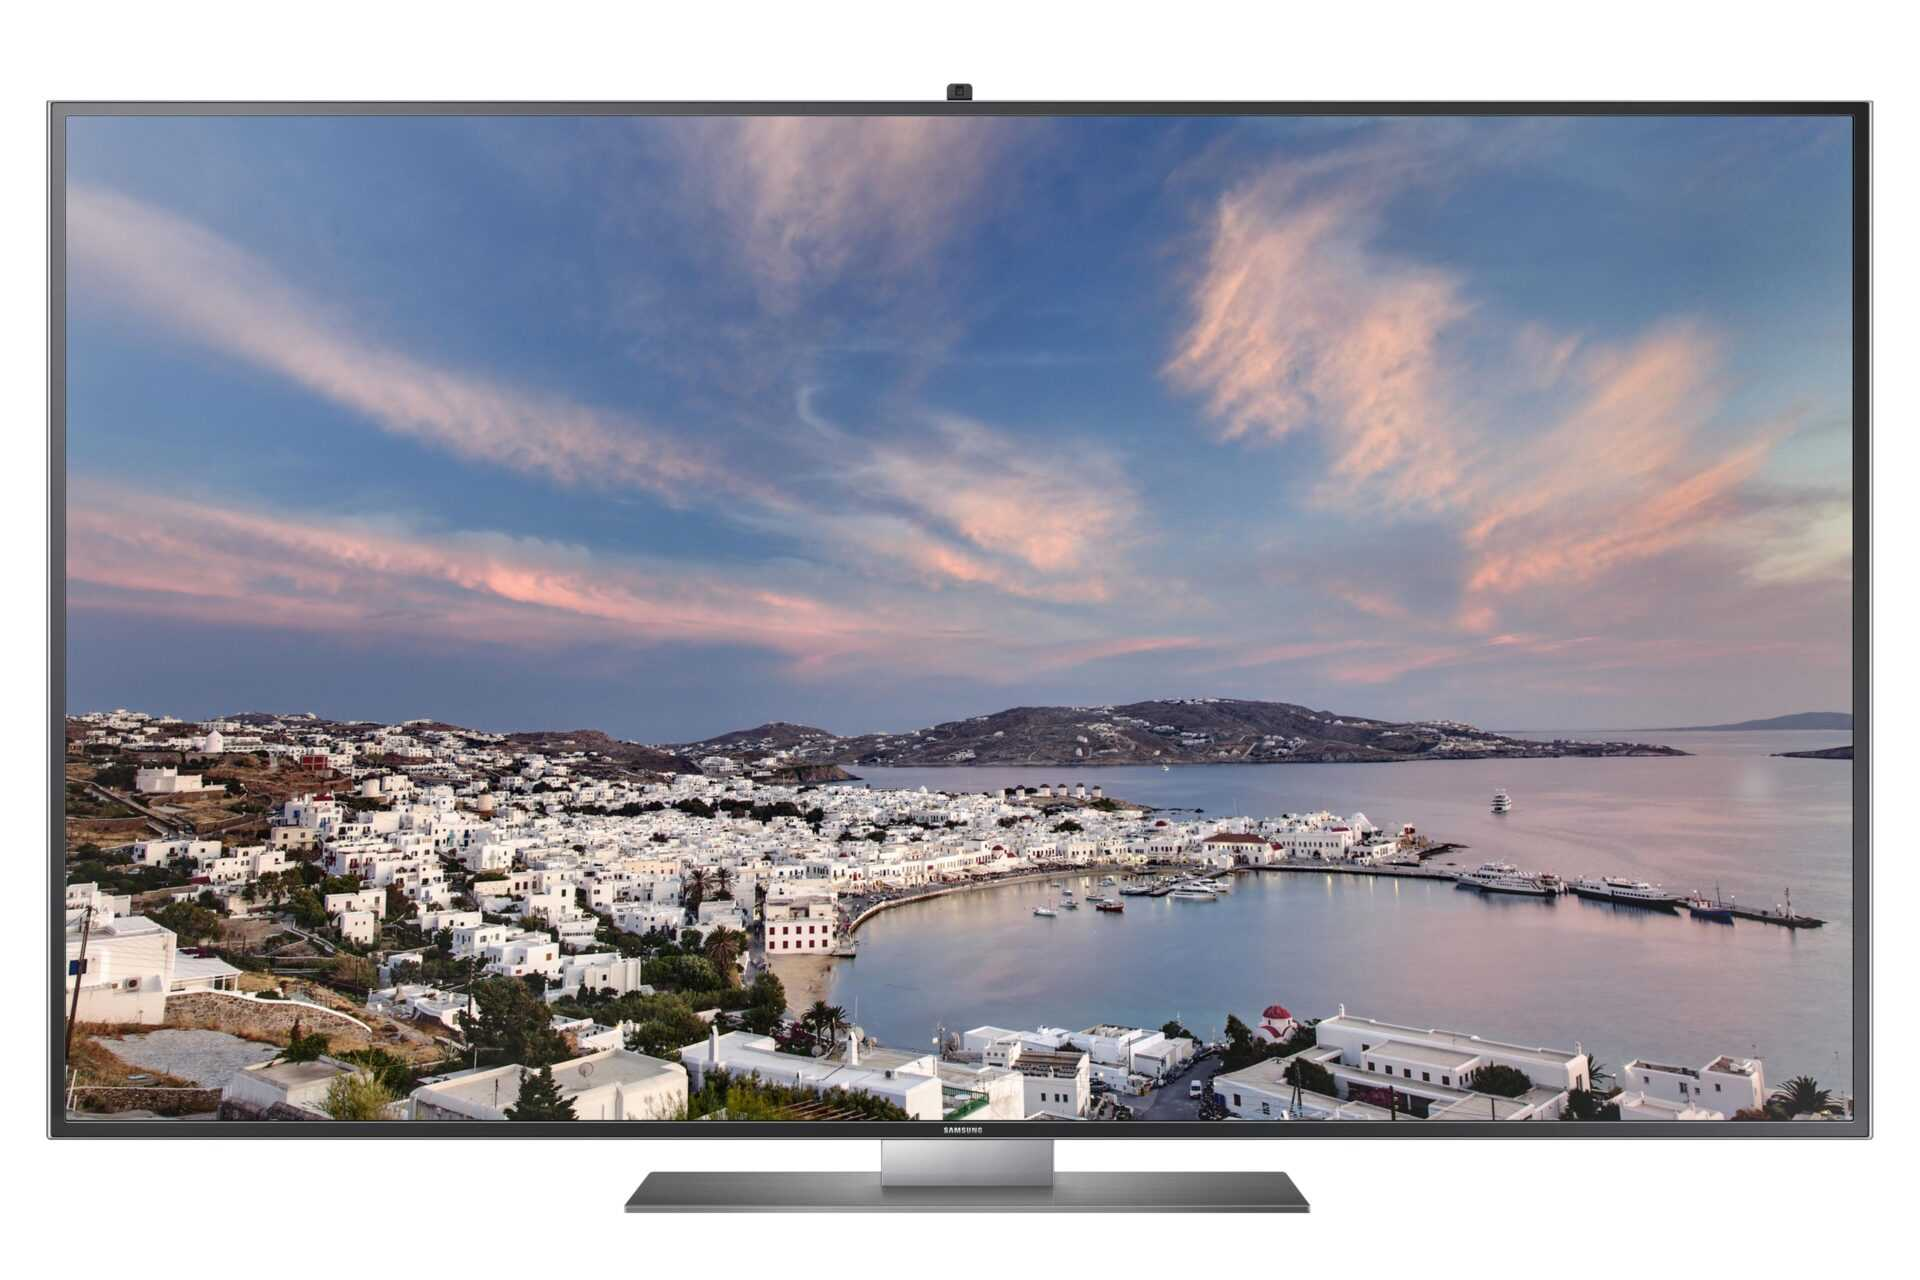 Samsung UHD TV: l'evoluzione dell'alta definizione | Digitale terrestre: Dtti.it